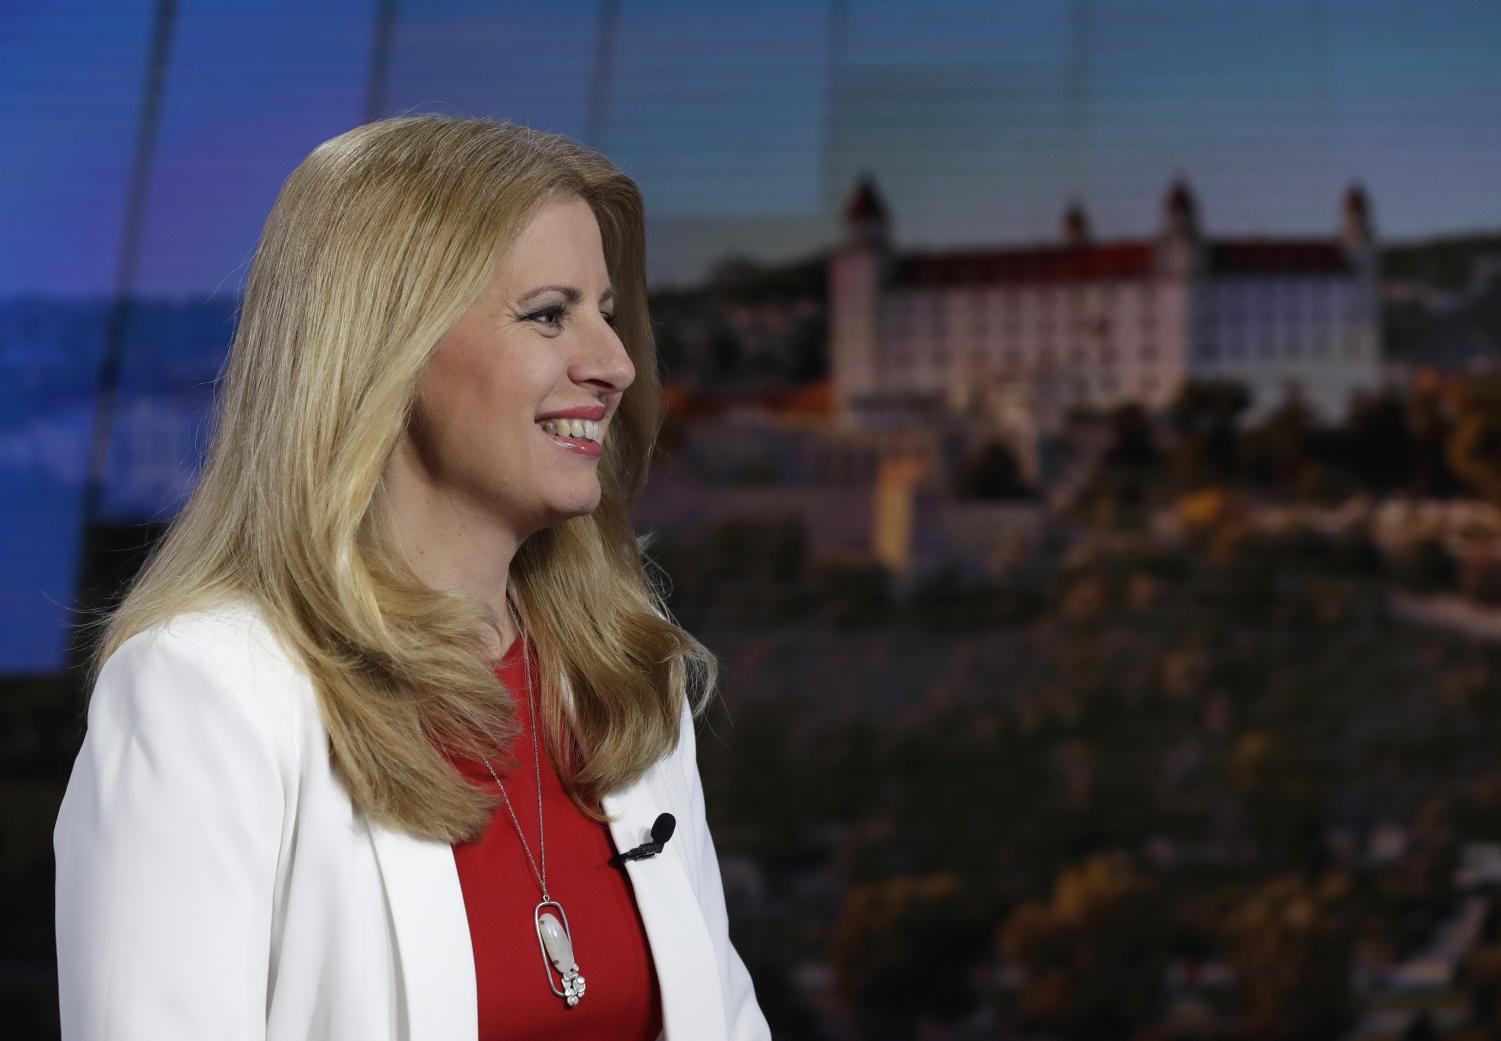 Newly elected Slovakian President Zuzana Caputova smiles in a TV studio prior a debate in Bratislava, Slovakia, Sunday, March 31, 2019. Caputova, a liberal environmental activist, has been elected as the first female president of Slovakia. The relative newcomer had 58 percent of the vote in Saturday's runoff election, topping rival Maros Sefcovic, who had 42 percent. (Petr David Josek | AP)